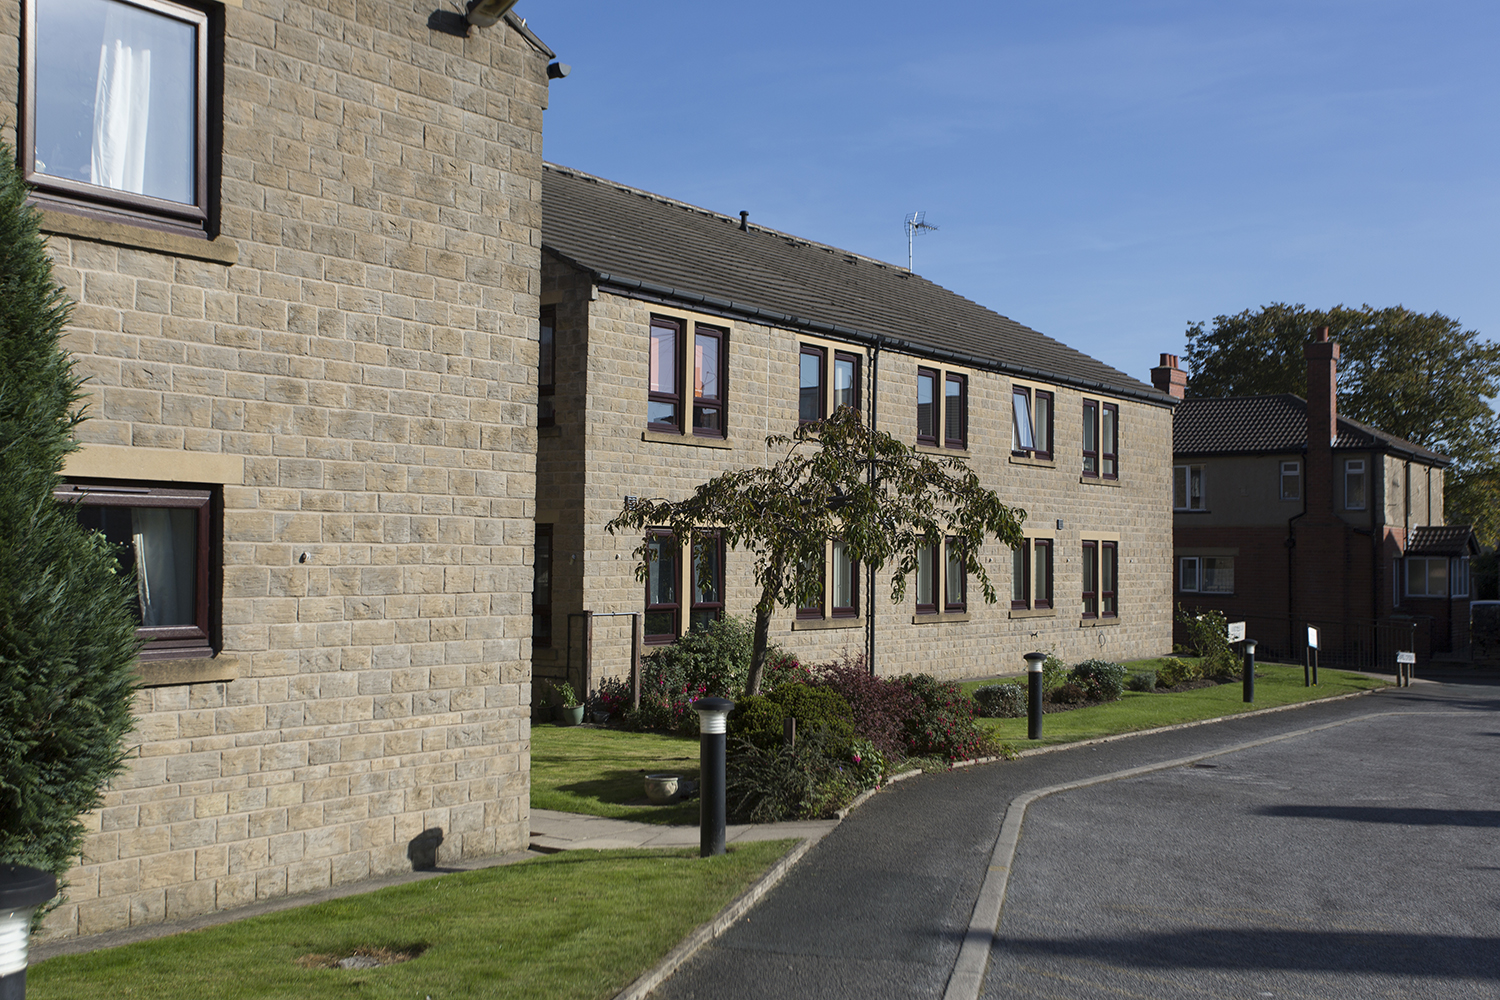 Pudsey_exterior_view